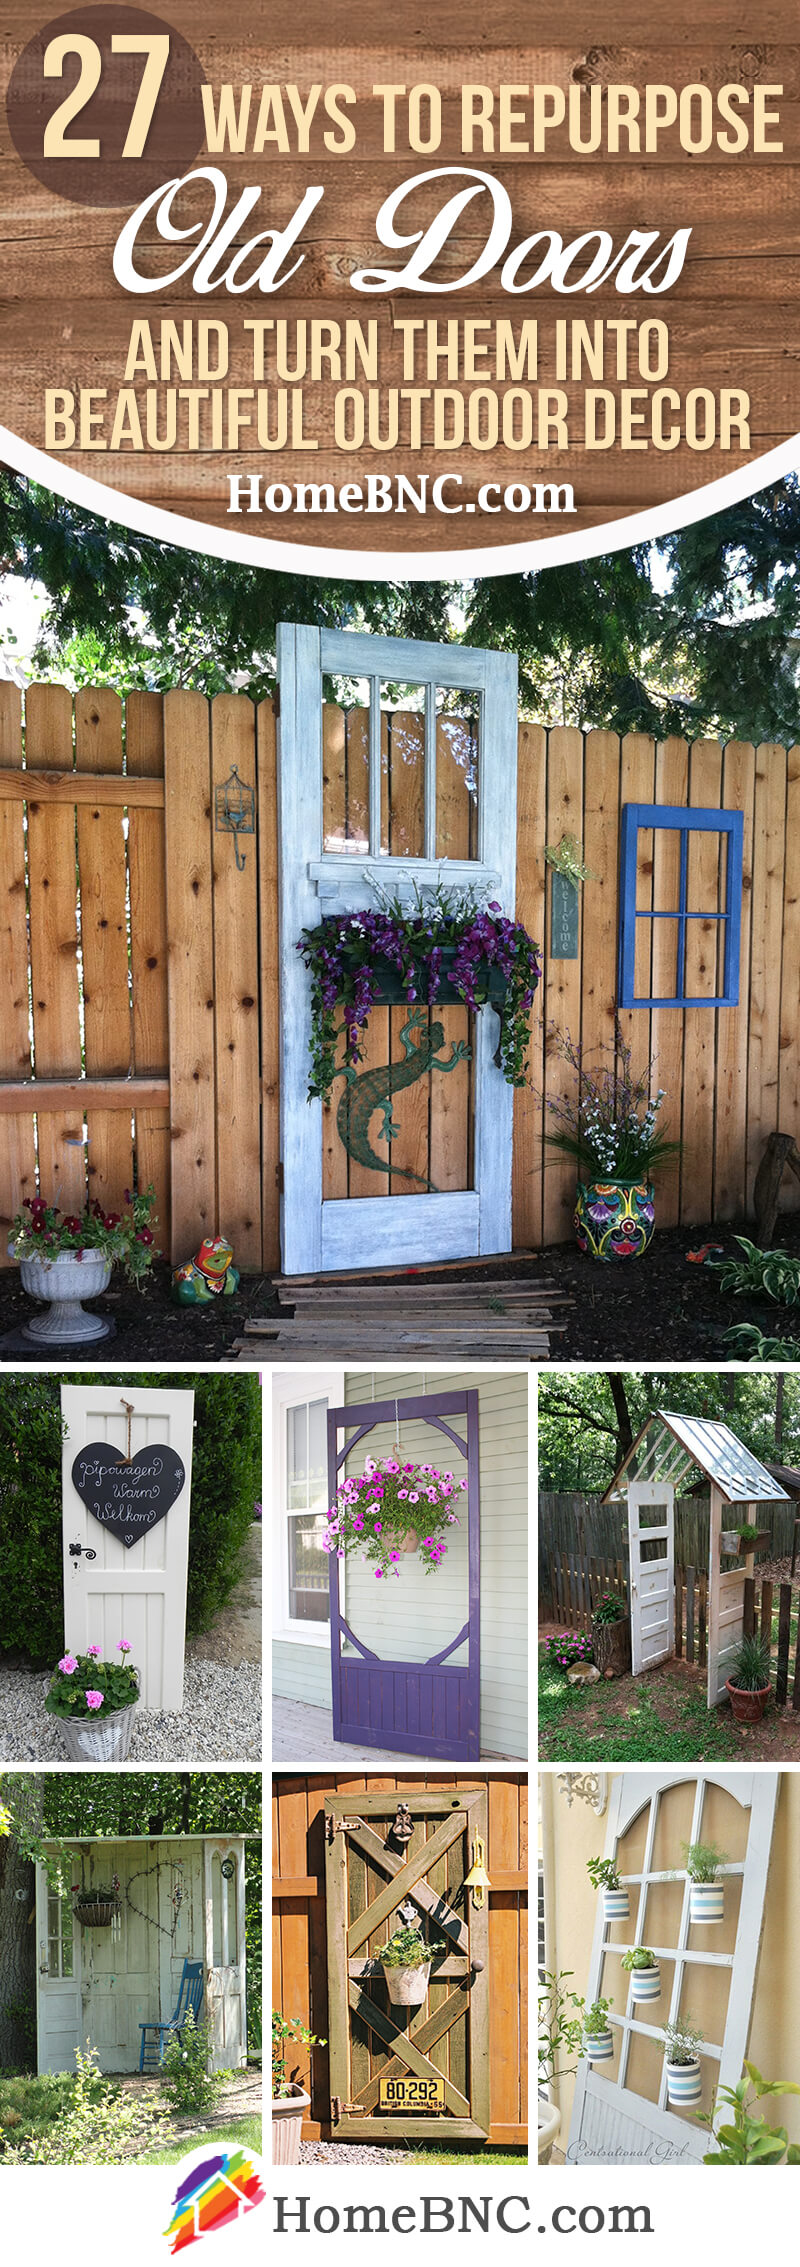 27 Best Old Door Outdoor Decor Ideas And Designs For 2021